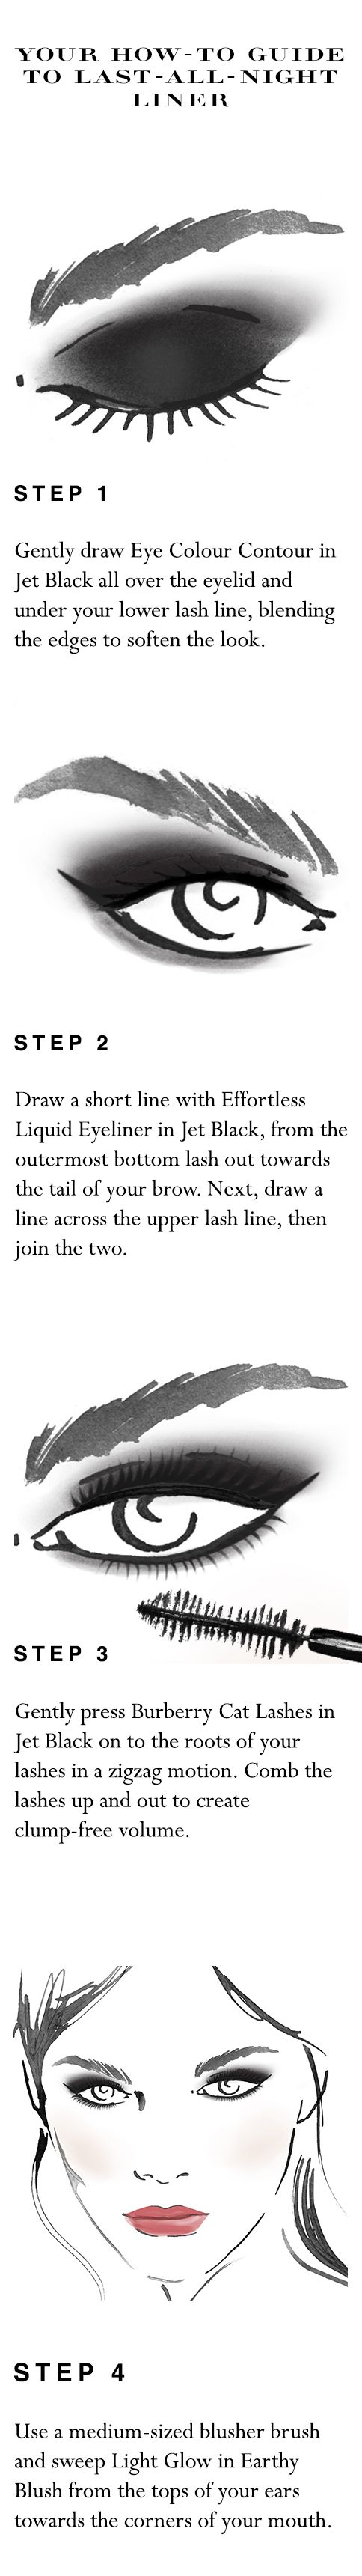 Your easy to follow make-up 'how to' for last-all-night liner in 10 minutes. Shop the complete look at Sephora.com and explore new Burberry Cat Lashes.